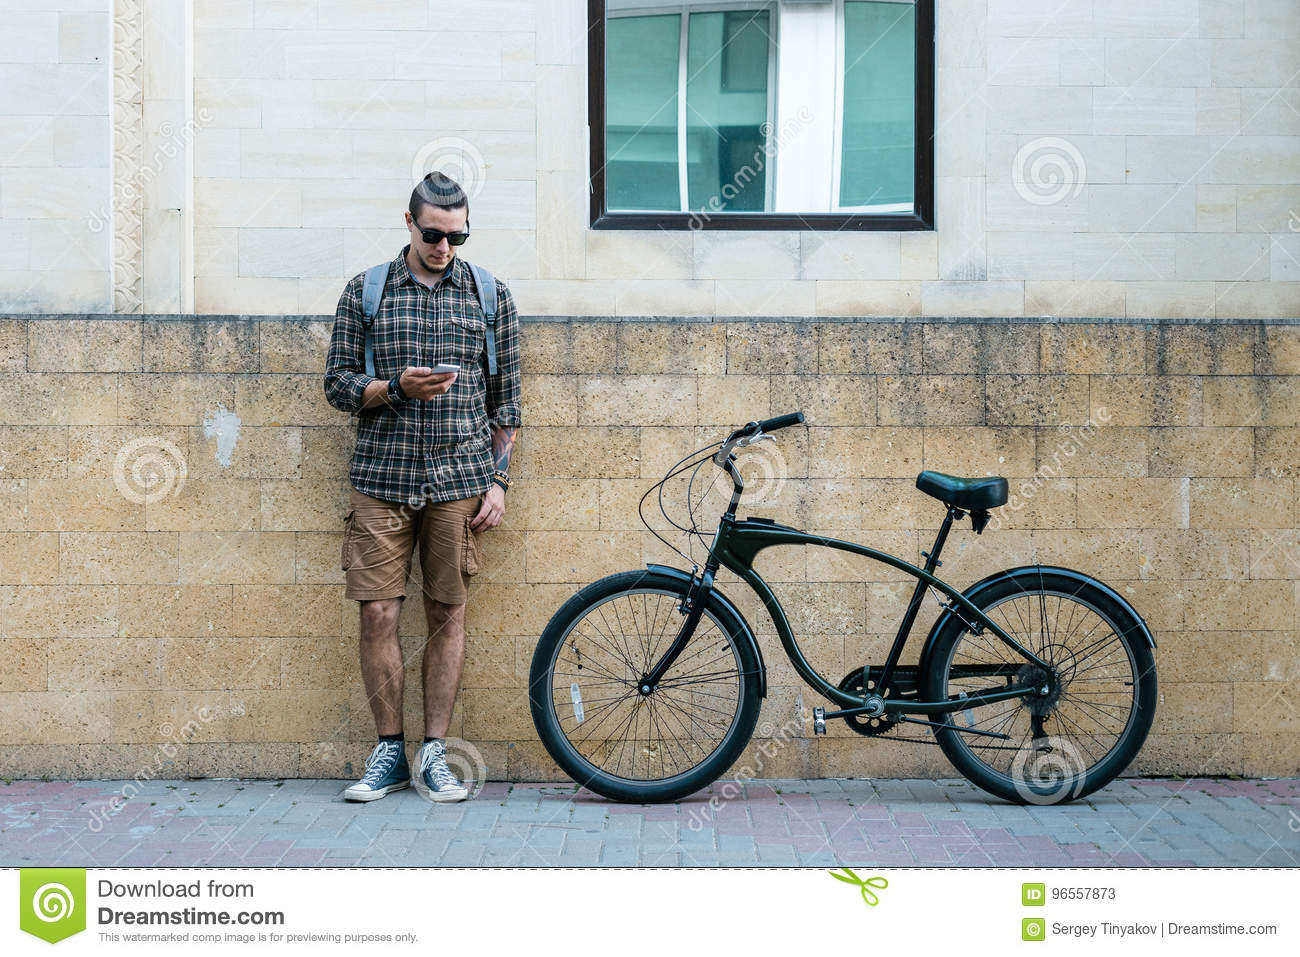 Download Handsome Young Man Cyclist Standing Next To Bike And His Looking At Smartphone. Street Lifestyle Urban Everyday Concept Stock Image - Image of everyday, cyclist: 96557873